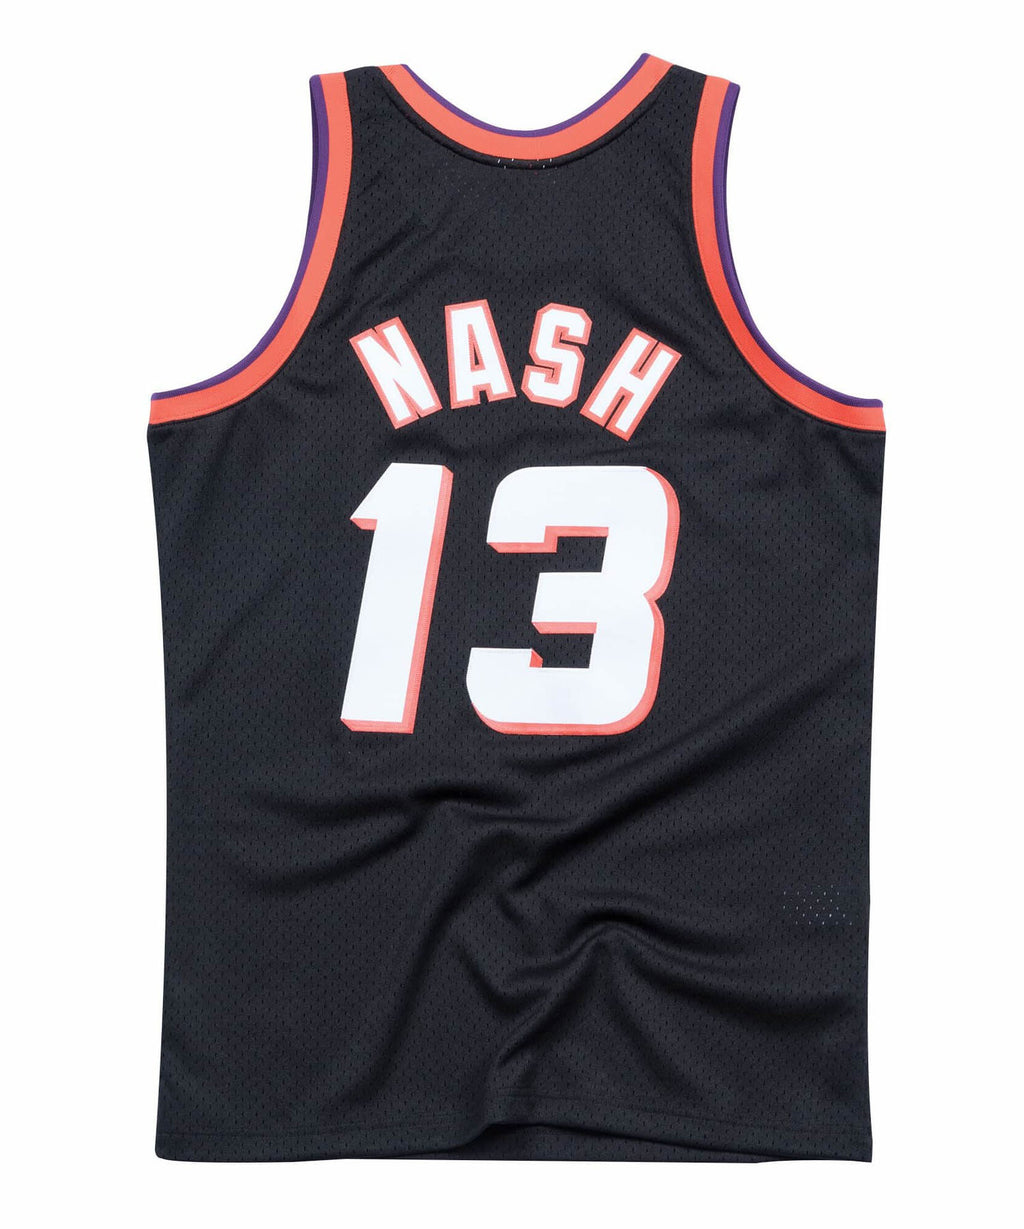 Steve Nash Phoenix Suns 1996-1997 Alternate Swingman Jersey